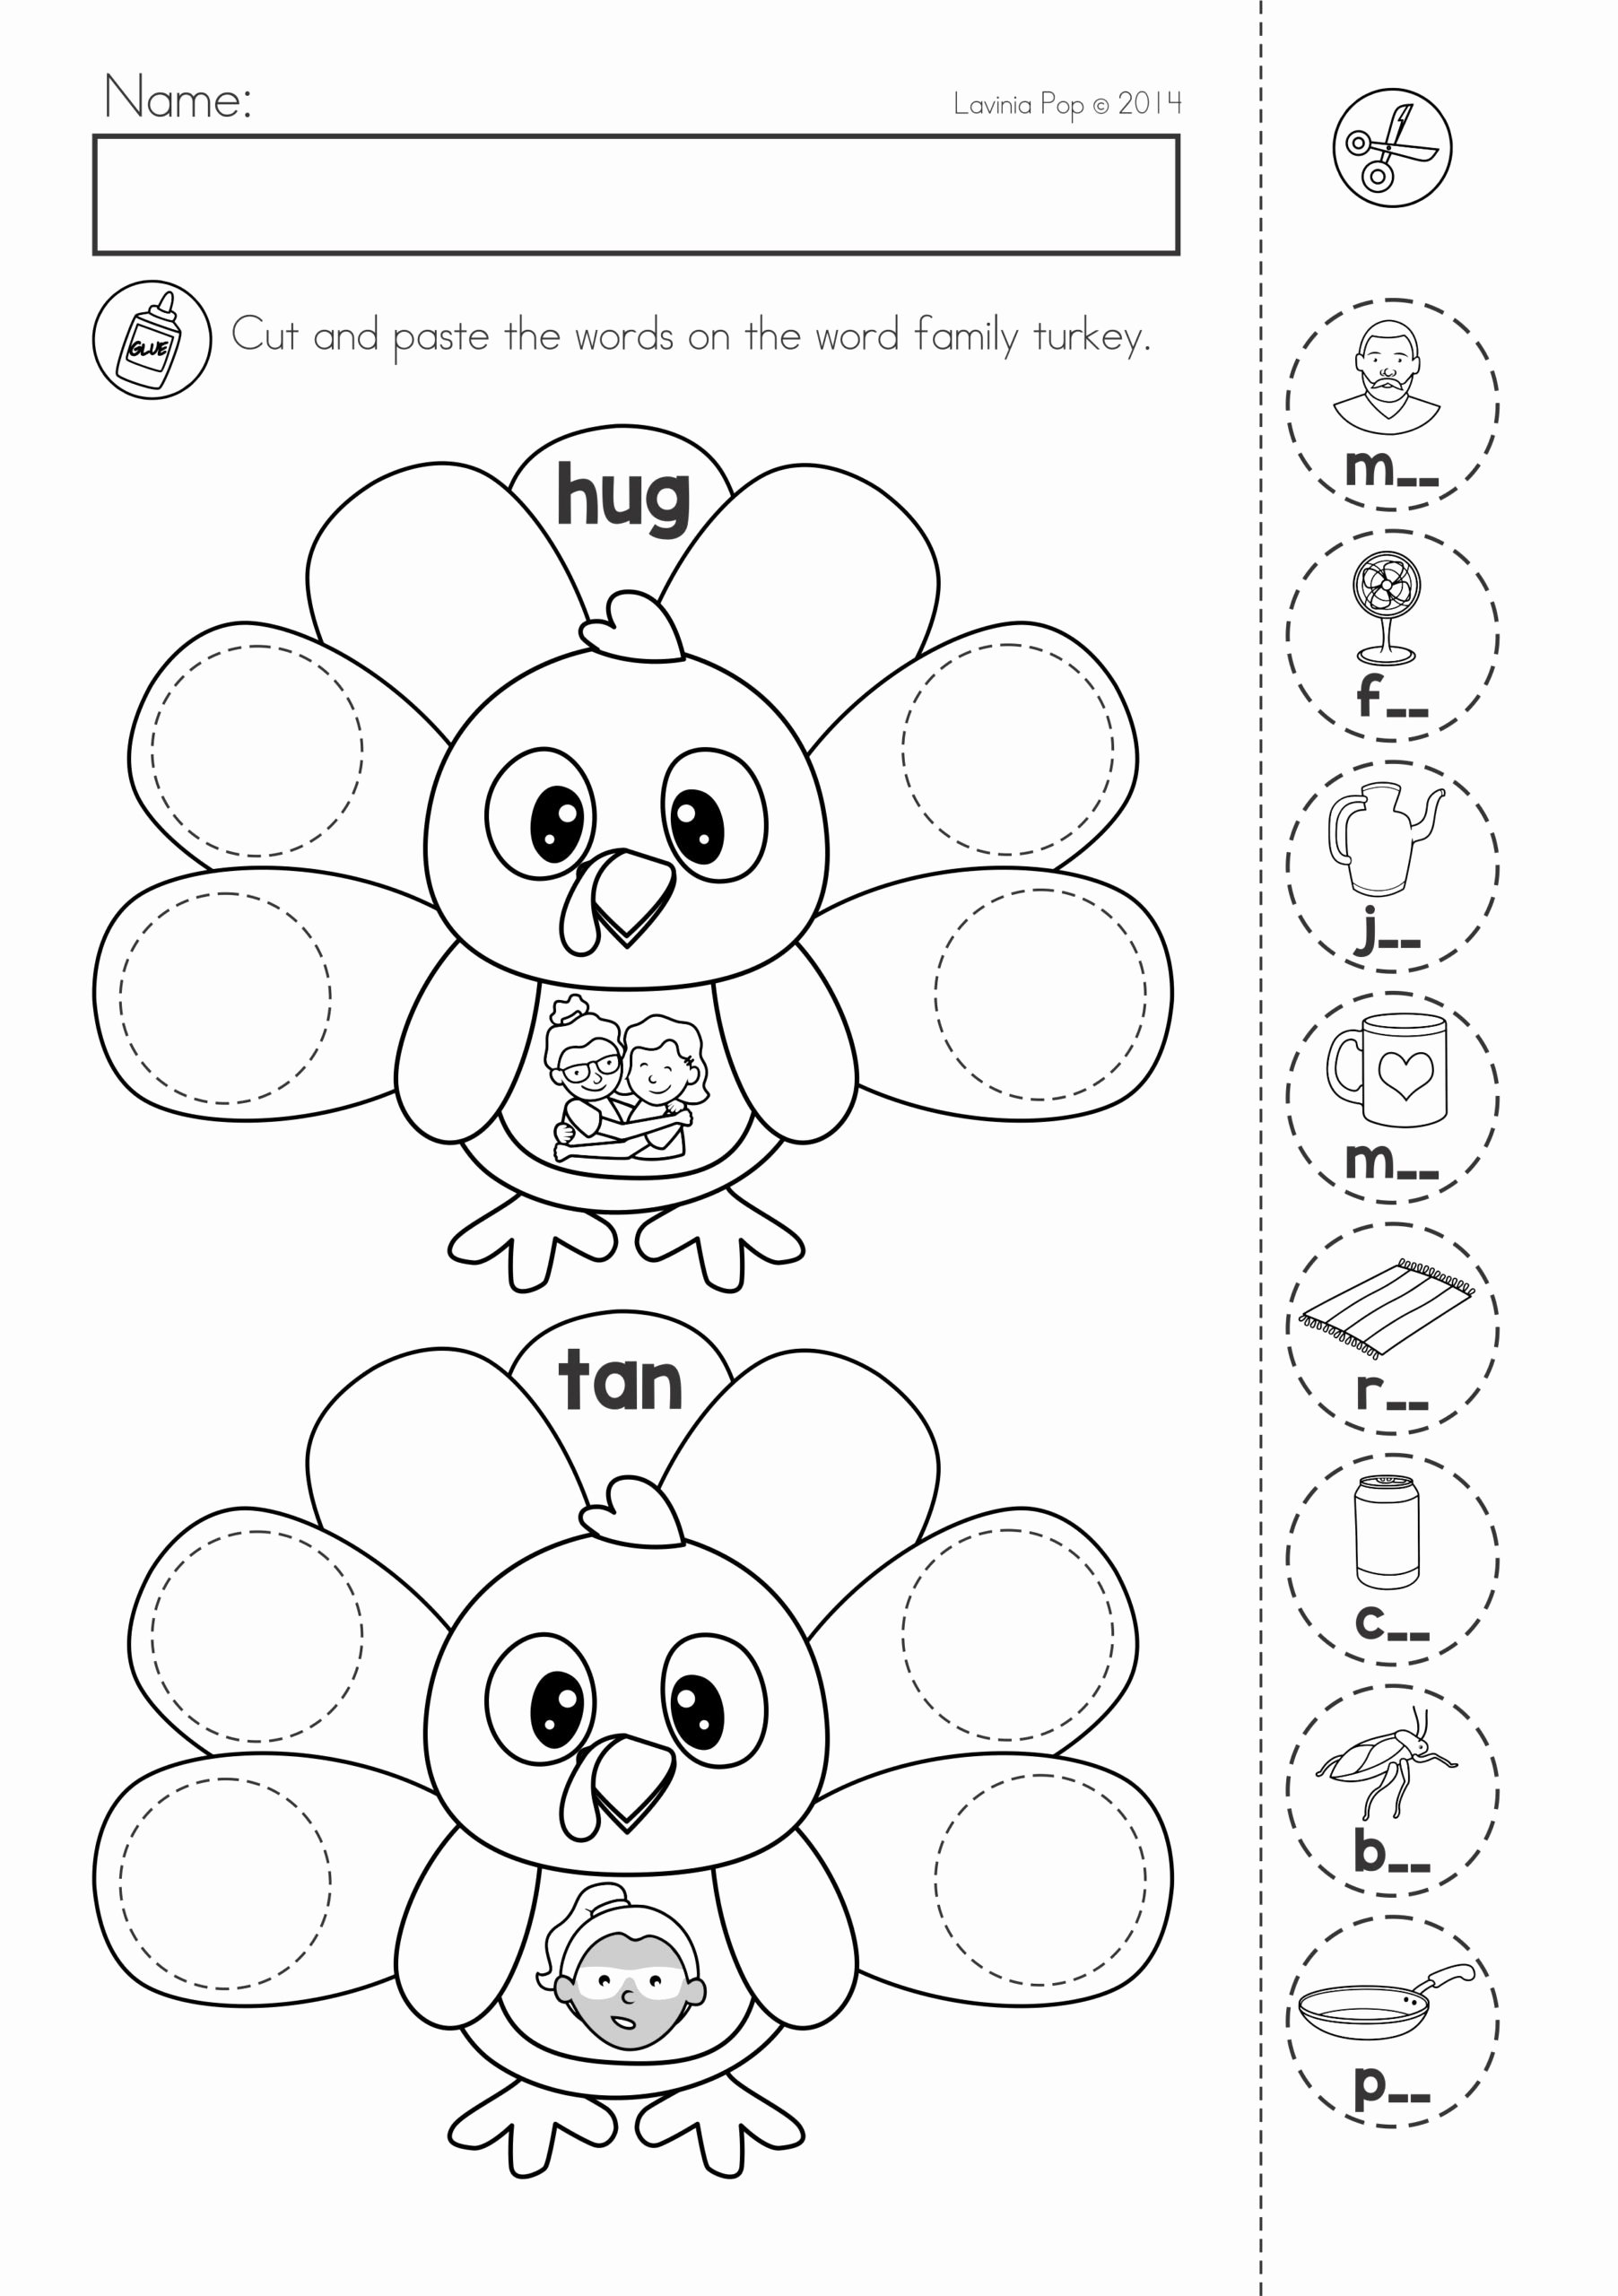 Chess Worksheets for Preschoolers Lovely Thanksgiving Math Literacy Worksheets and Activities